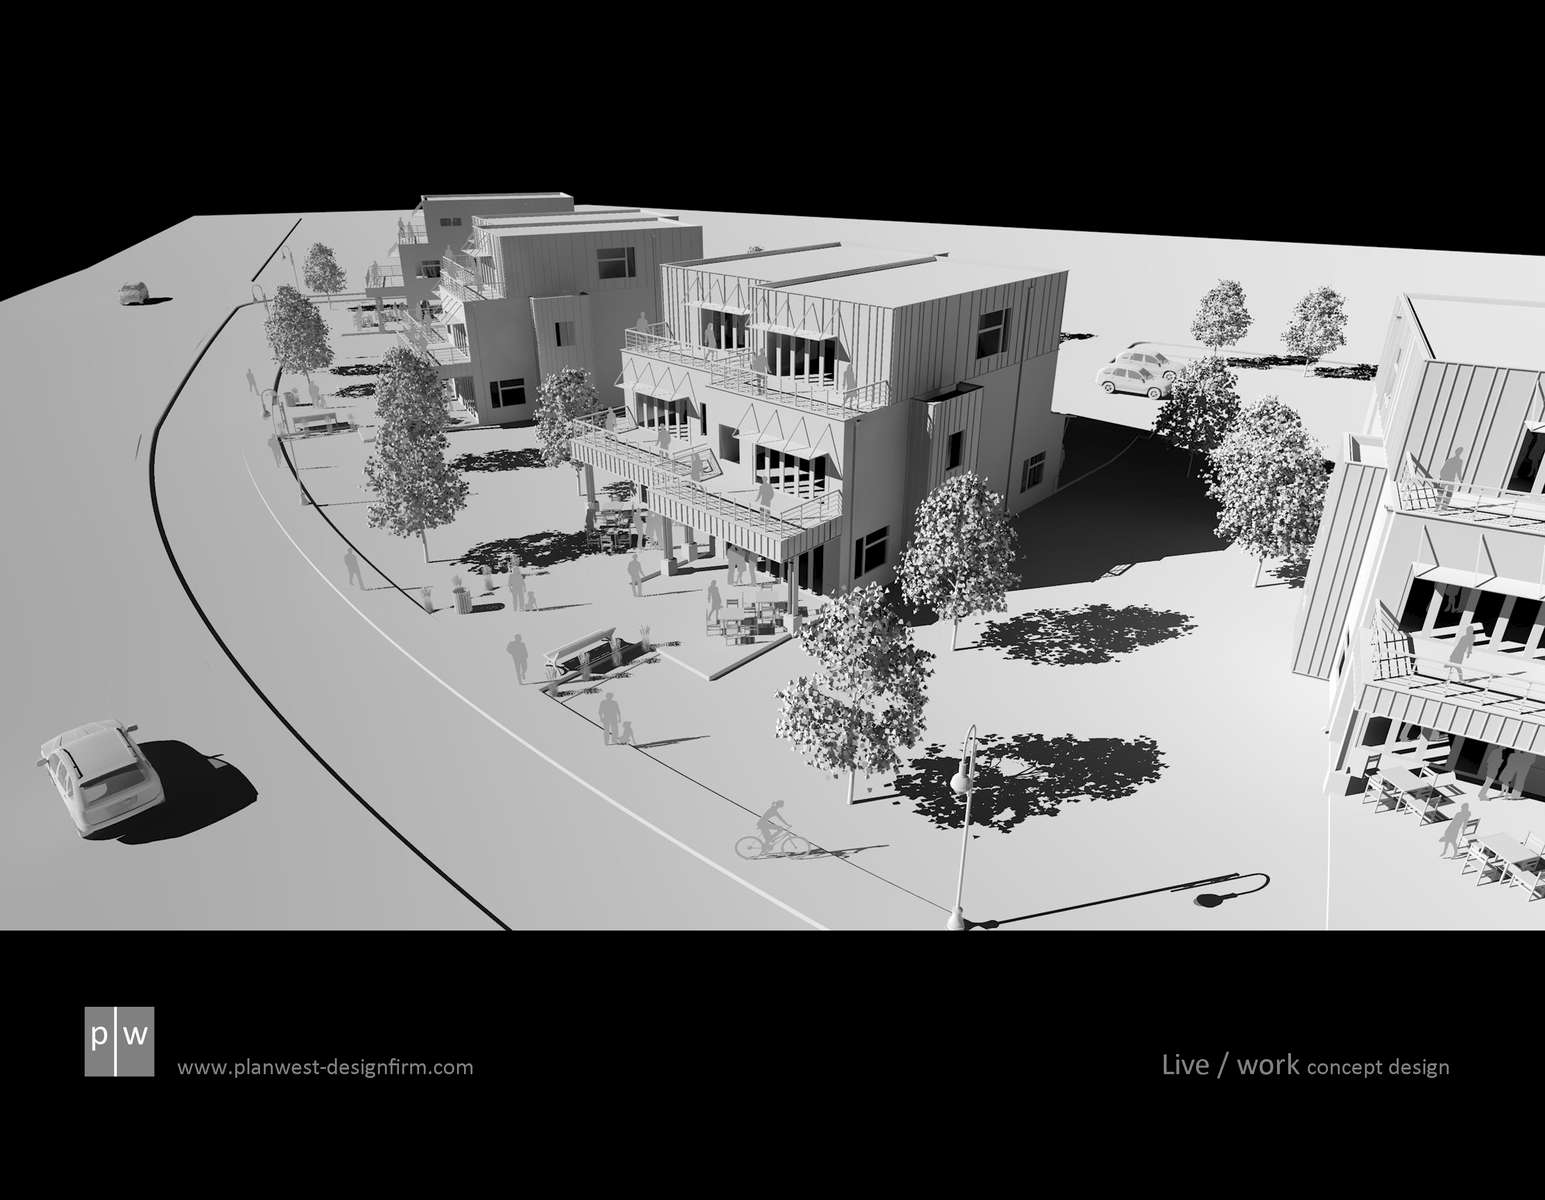 plan-west-design-firm-_-projects-in-process-701